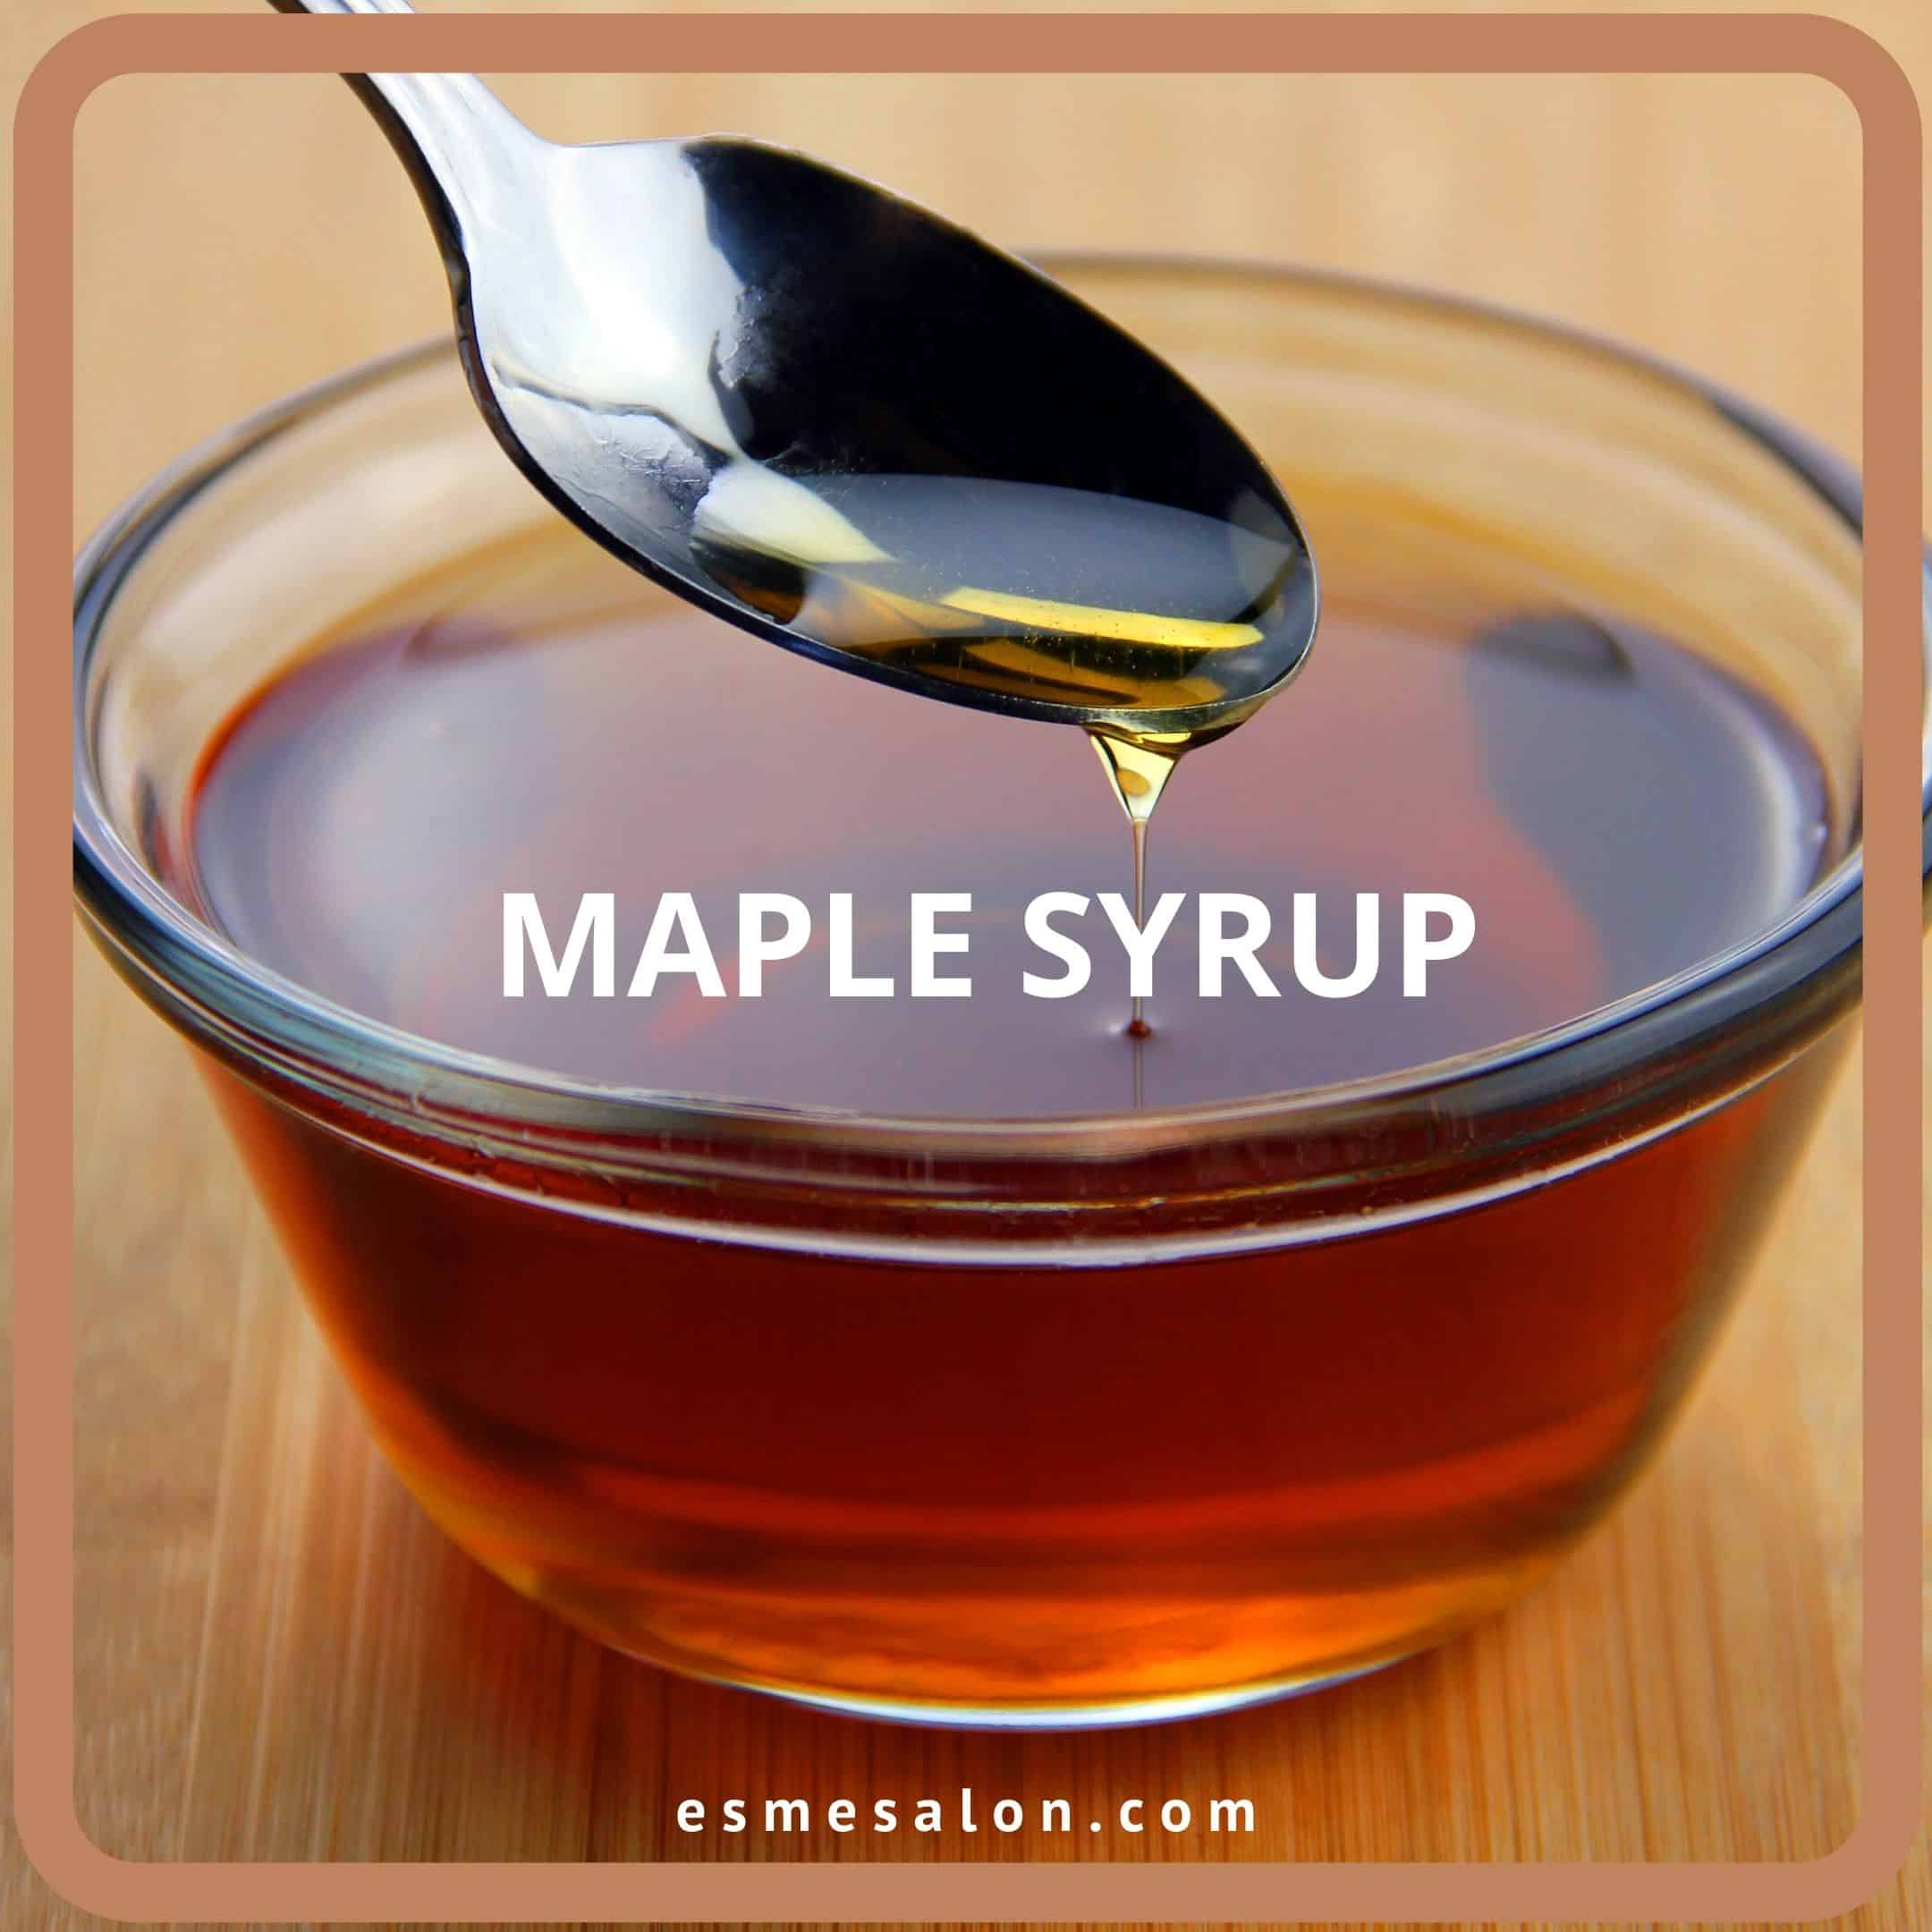 Spoon full of maple syrup poured into a bowl